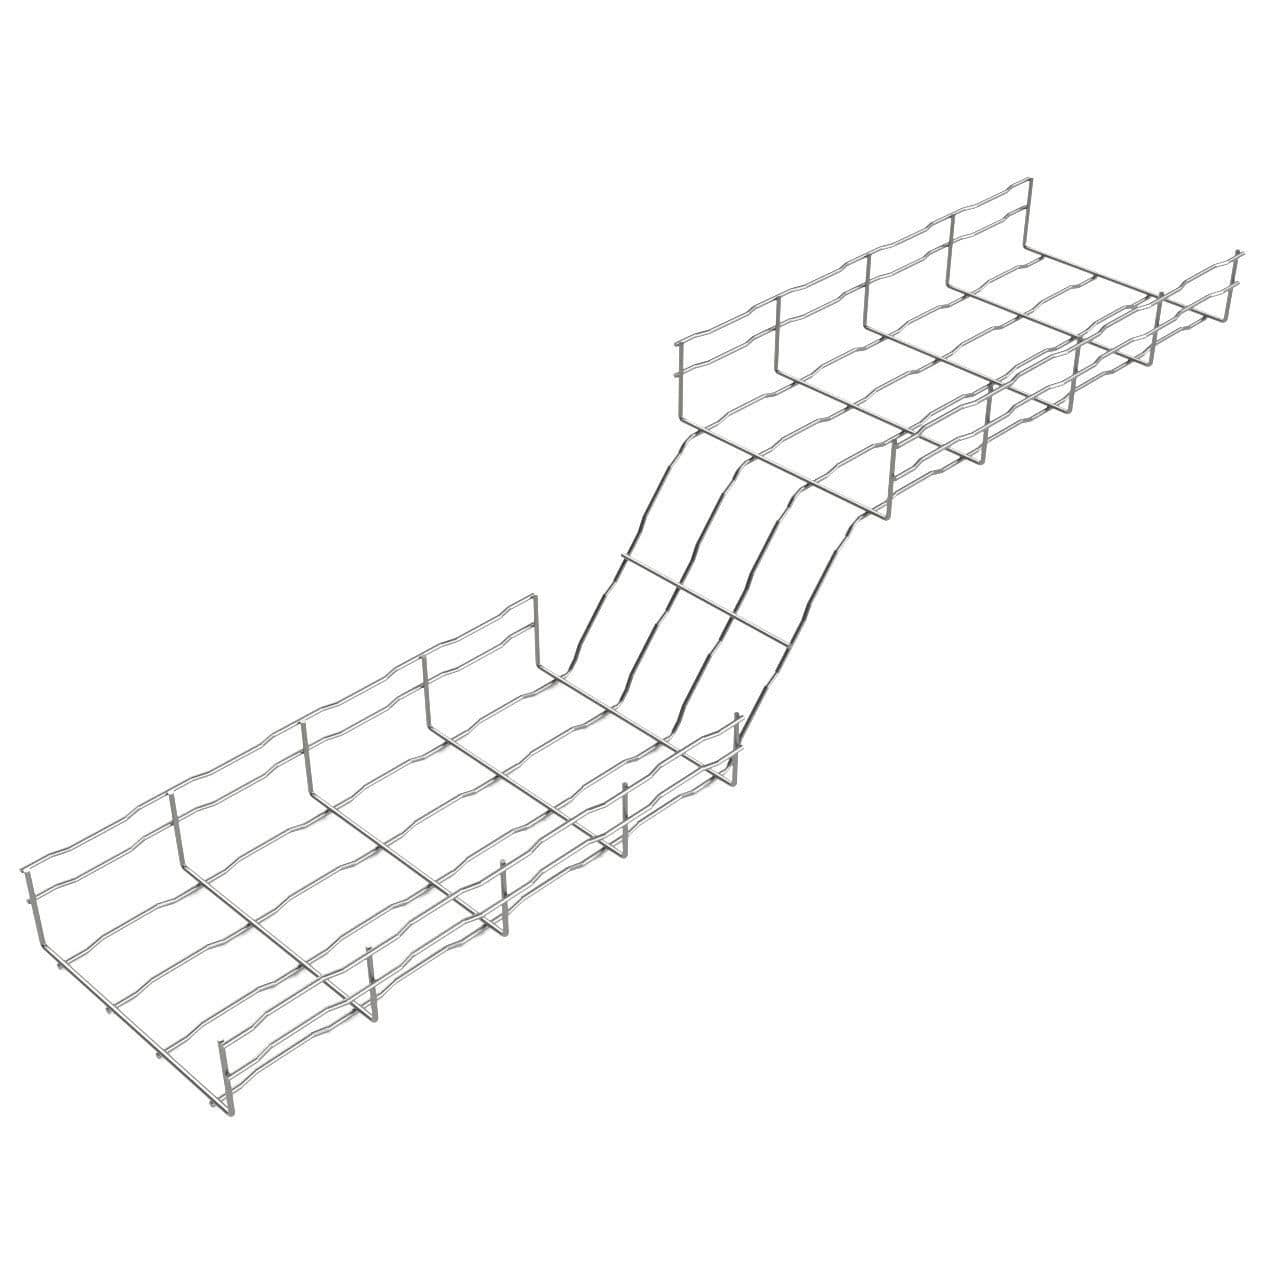 Steel wire mesh cable tray bfr basor electric